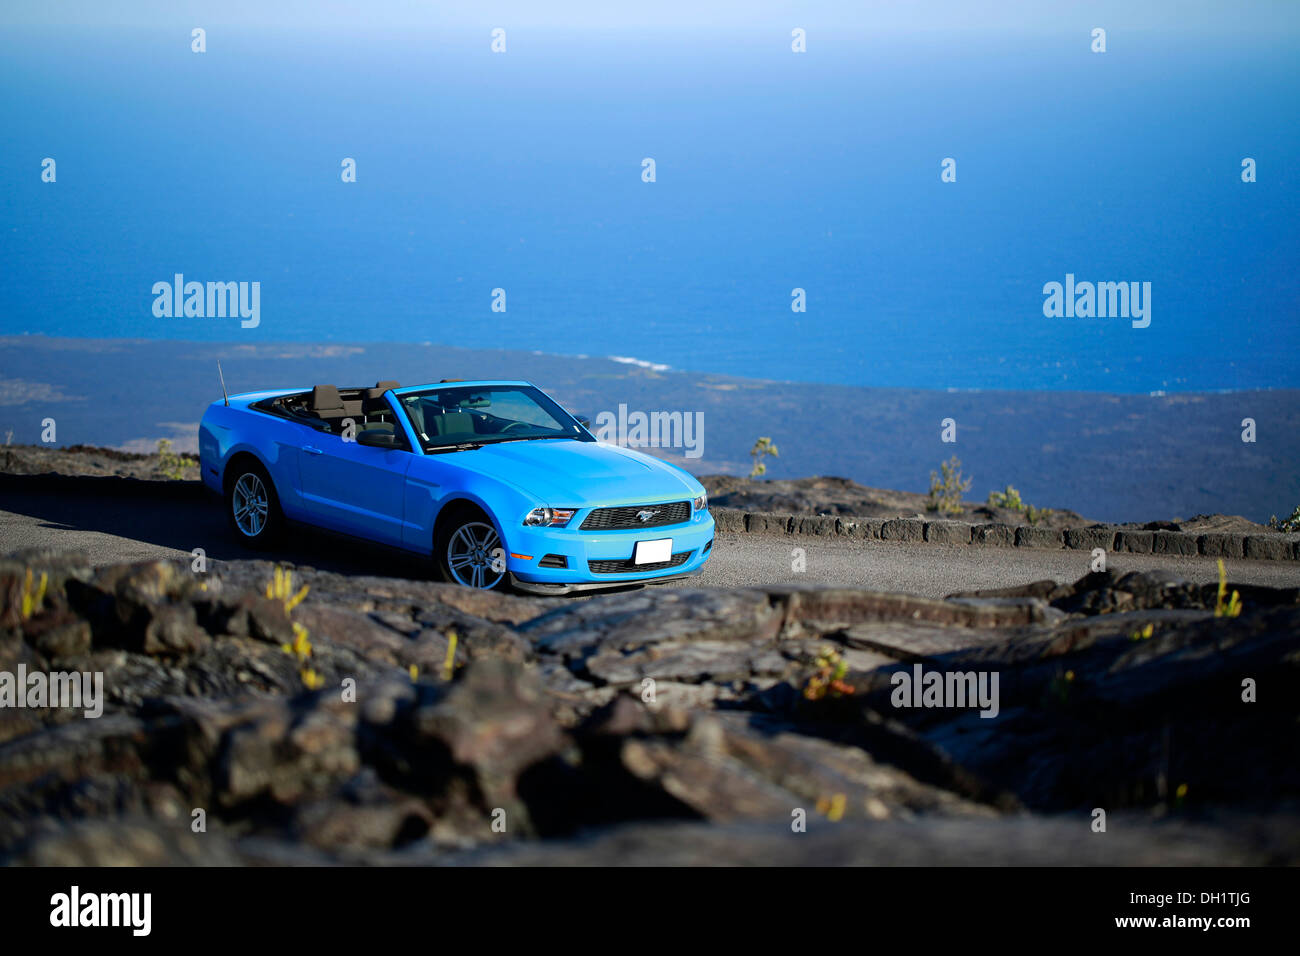 Sky-blue Ford Mustang convertible by the sea, Big Island, Hawaii, USA - Stock Image